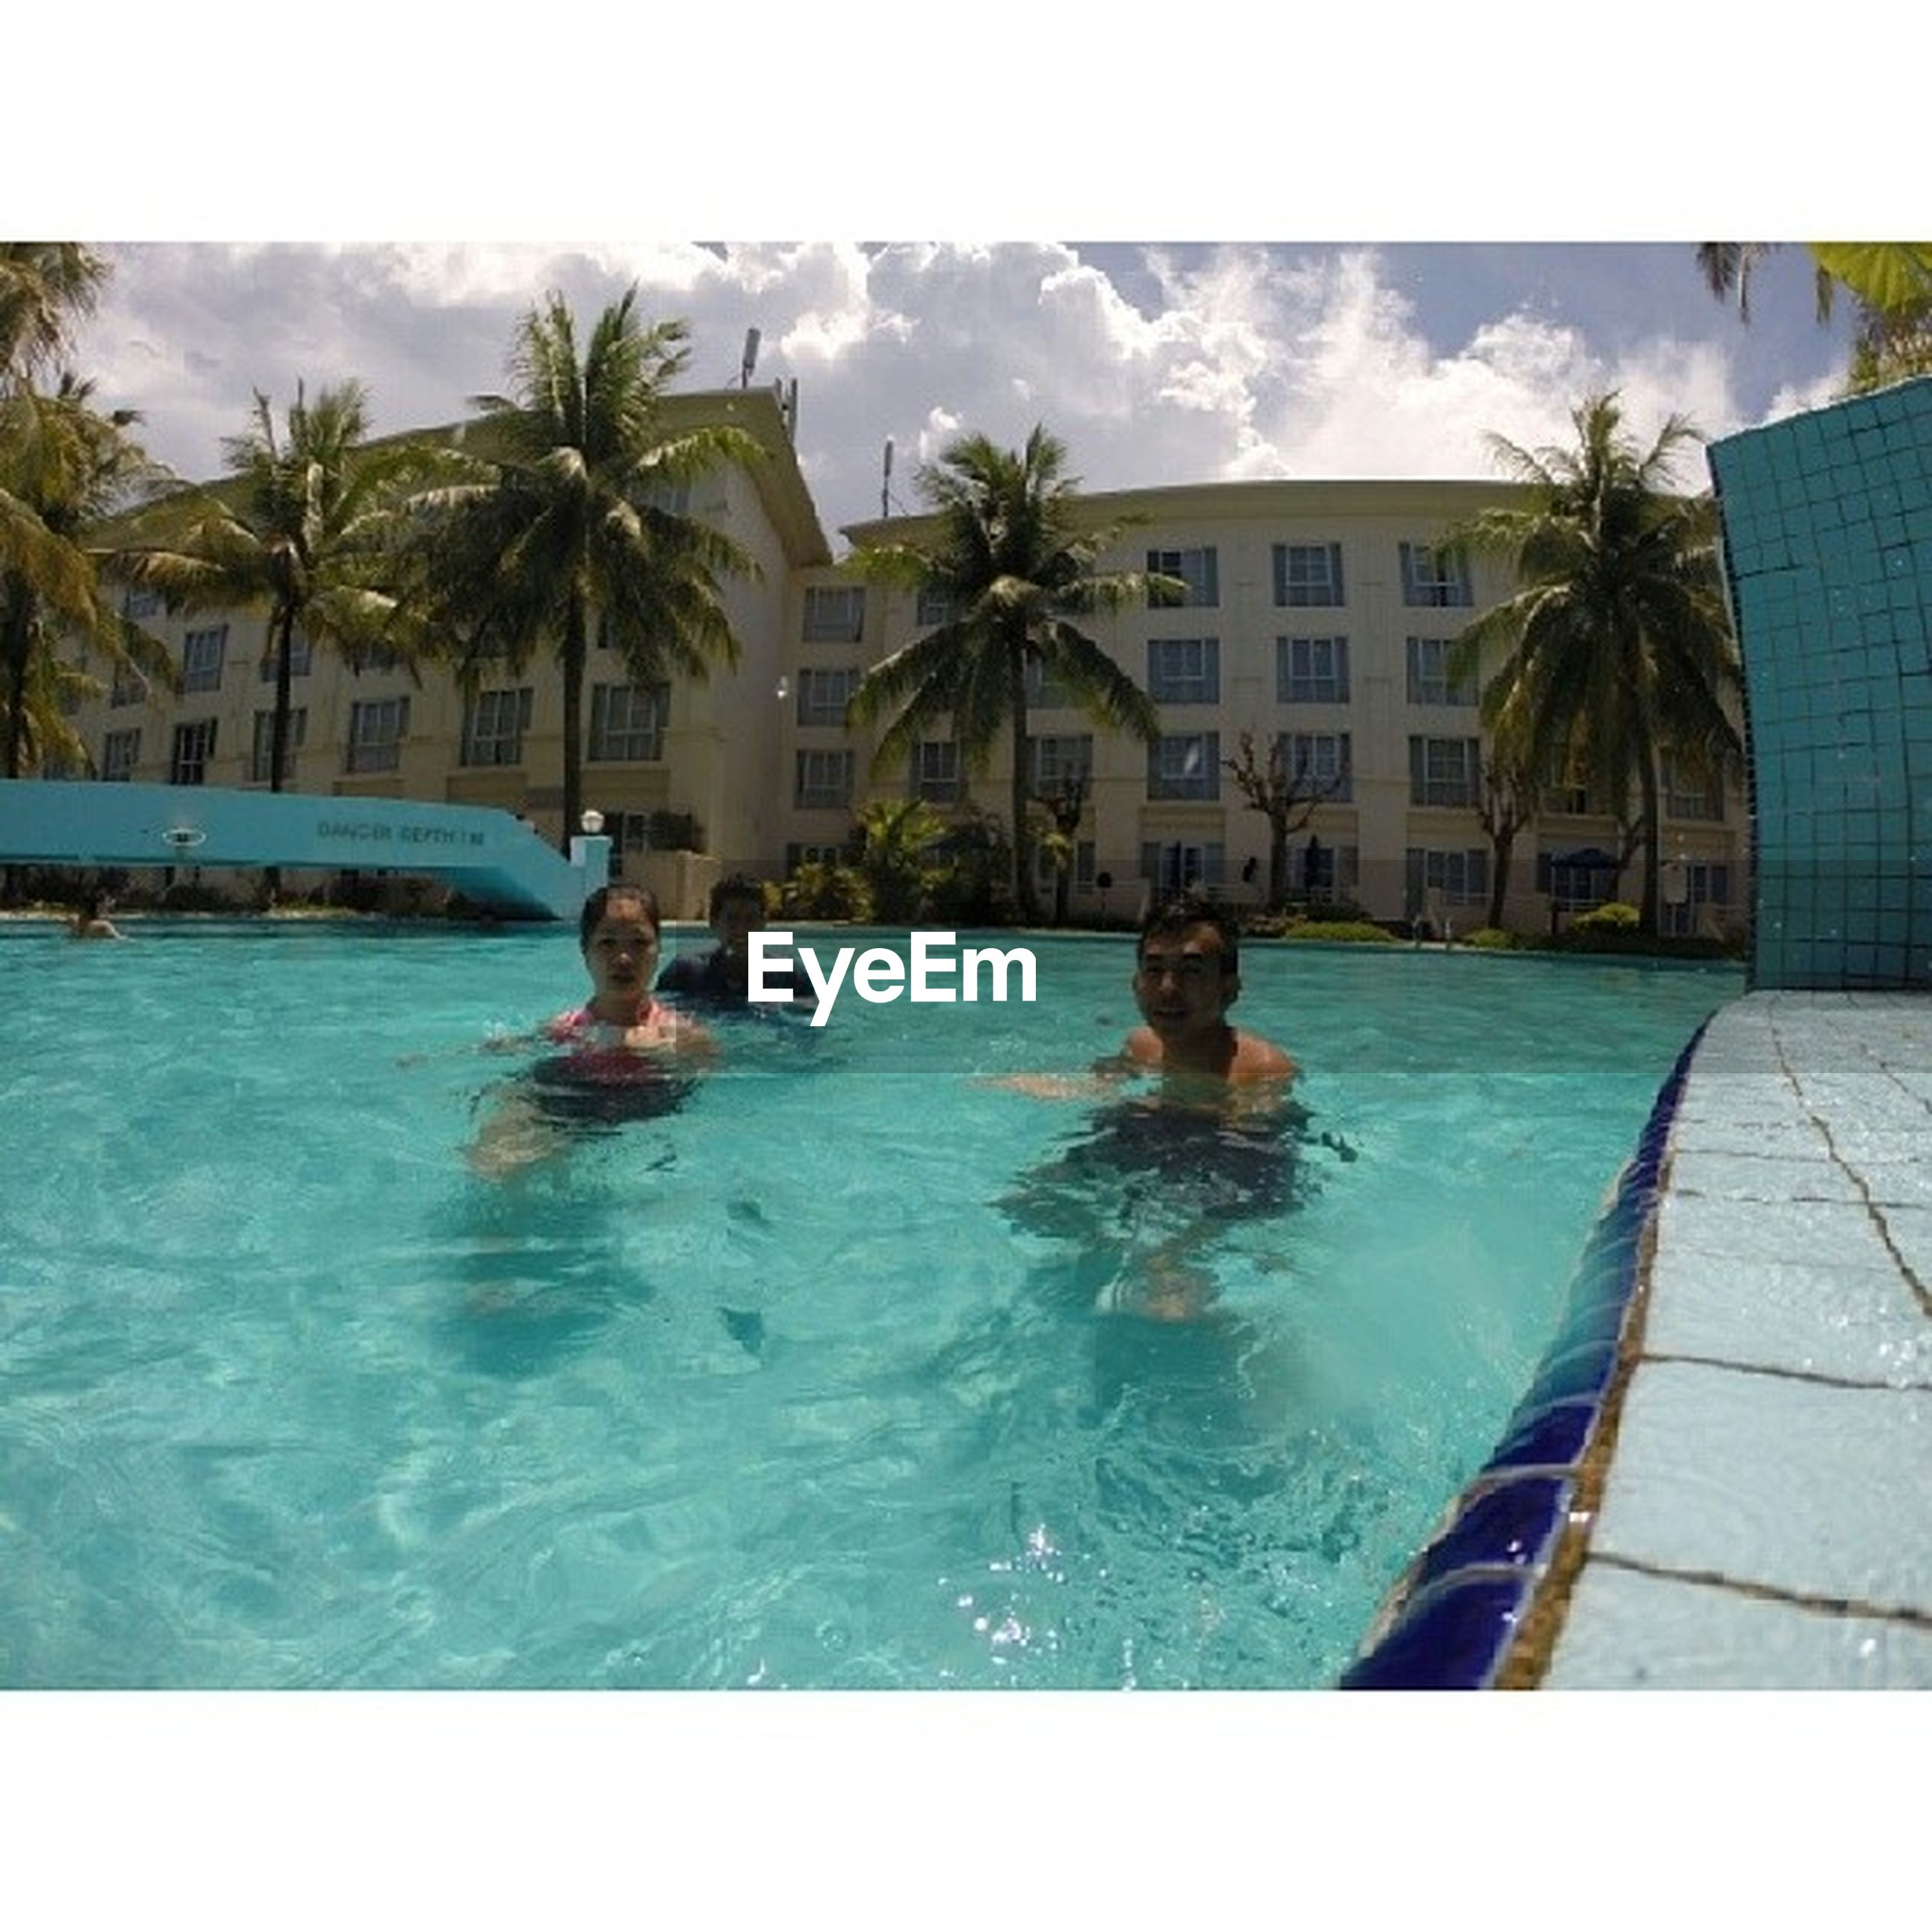 water, swimming pool, building exterior, transfer print, palm tree, lifestyles, architecture, built structure, leisure activity, waterfront, men, auto post production filter, tree, sea, swimming, day, sky, vacations